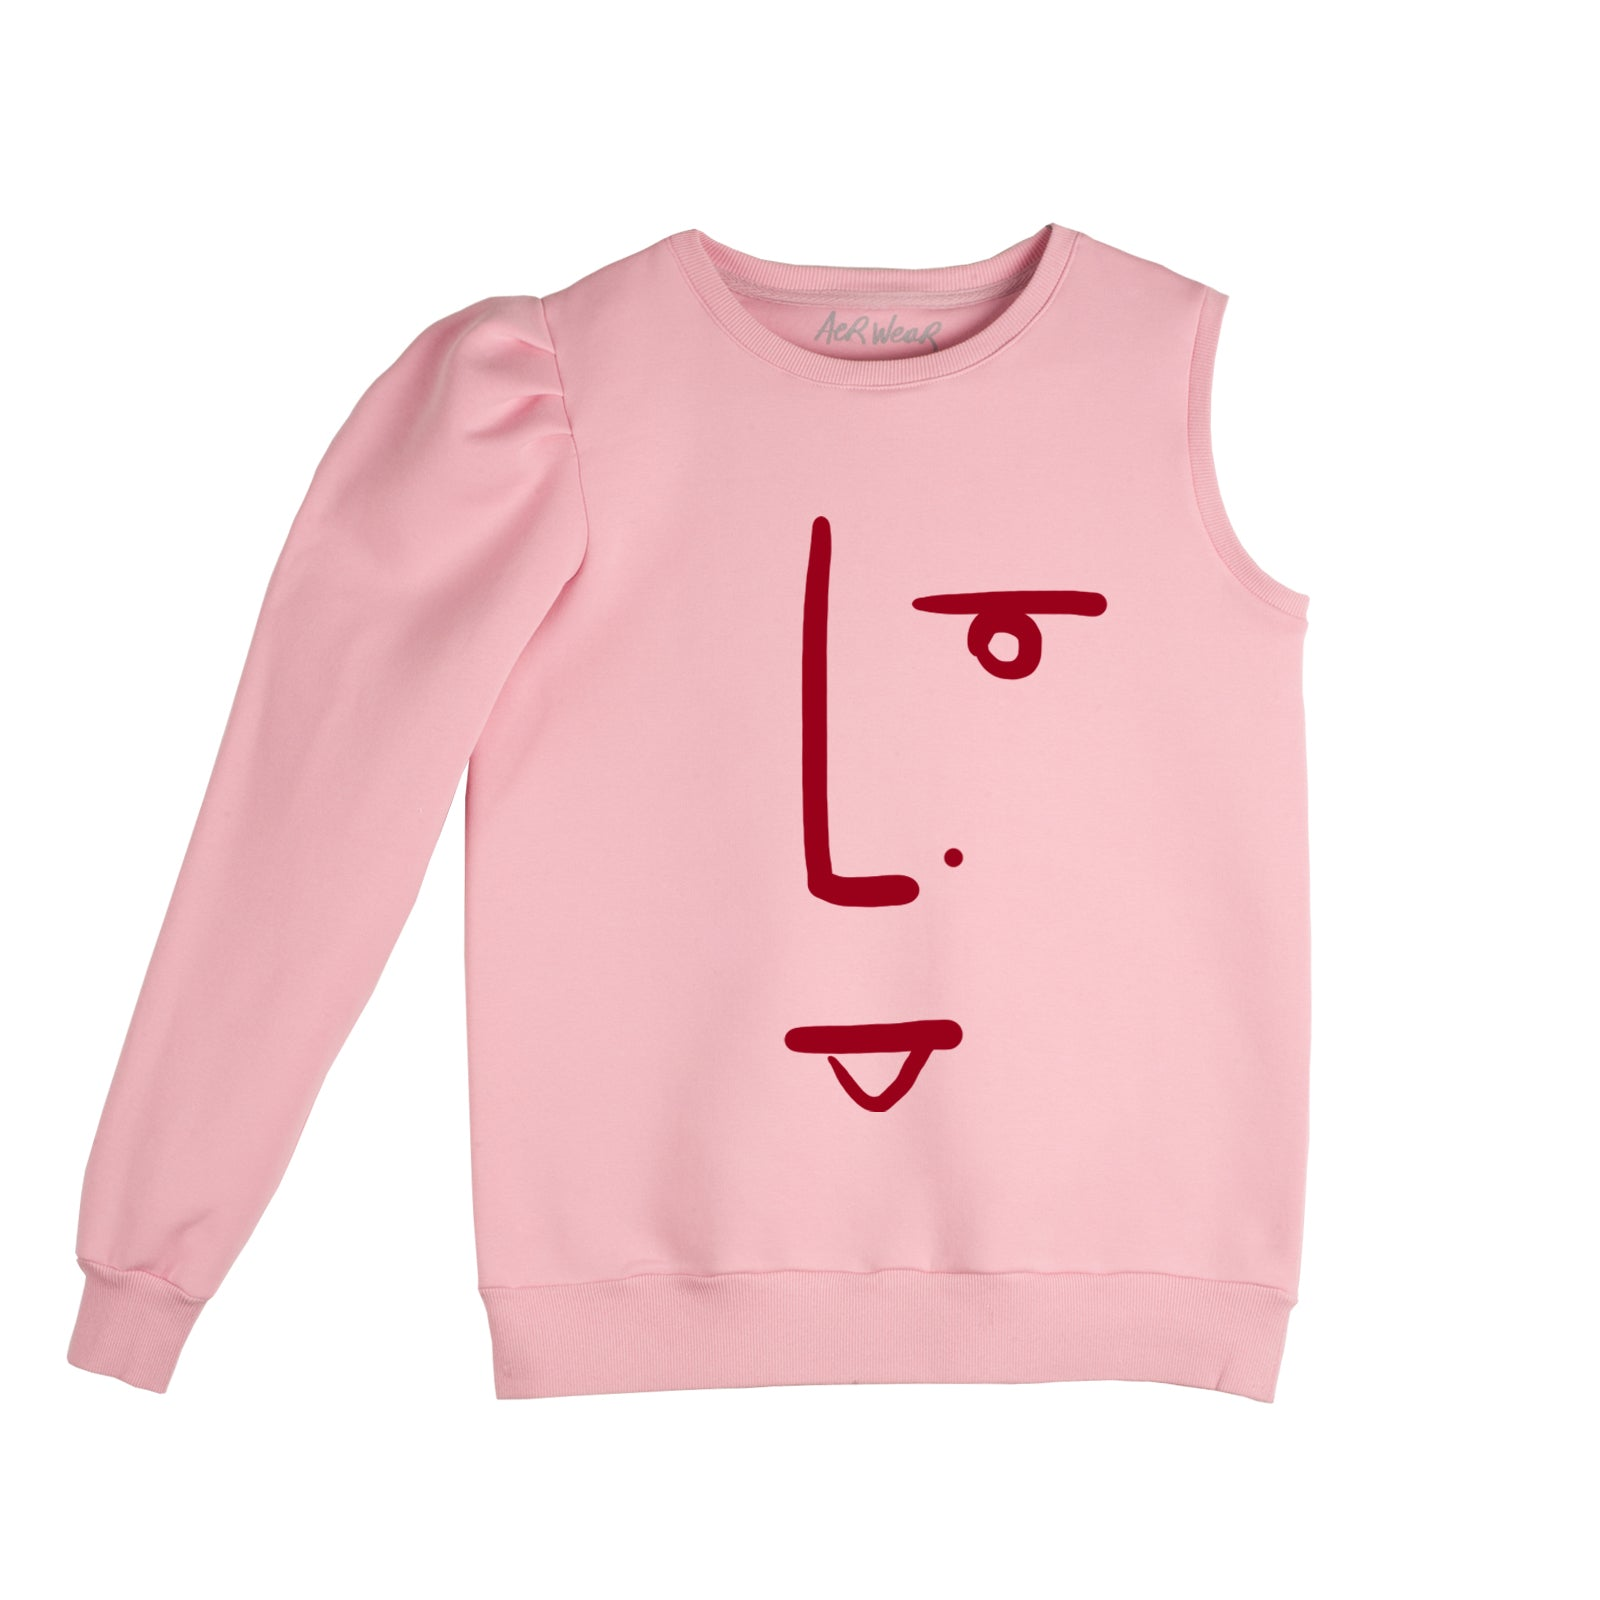 THE FACE, one sleeve sweatshirt